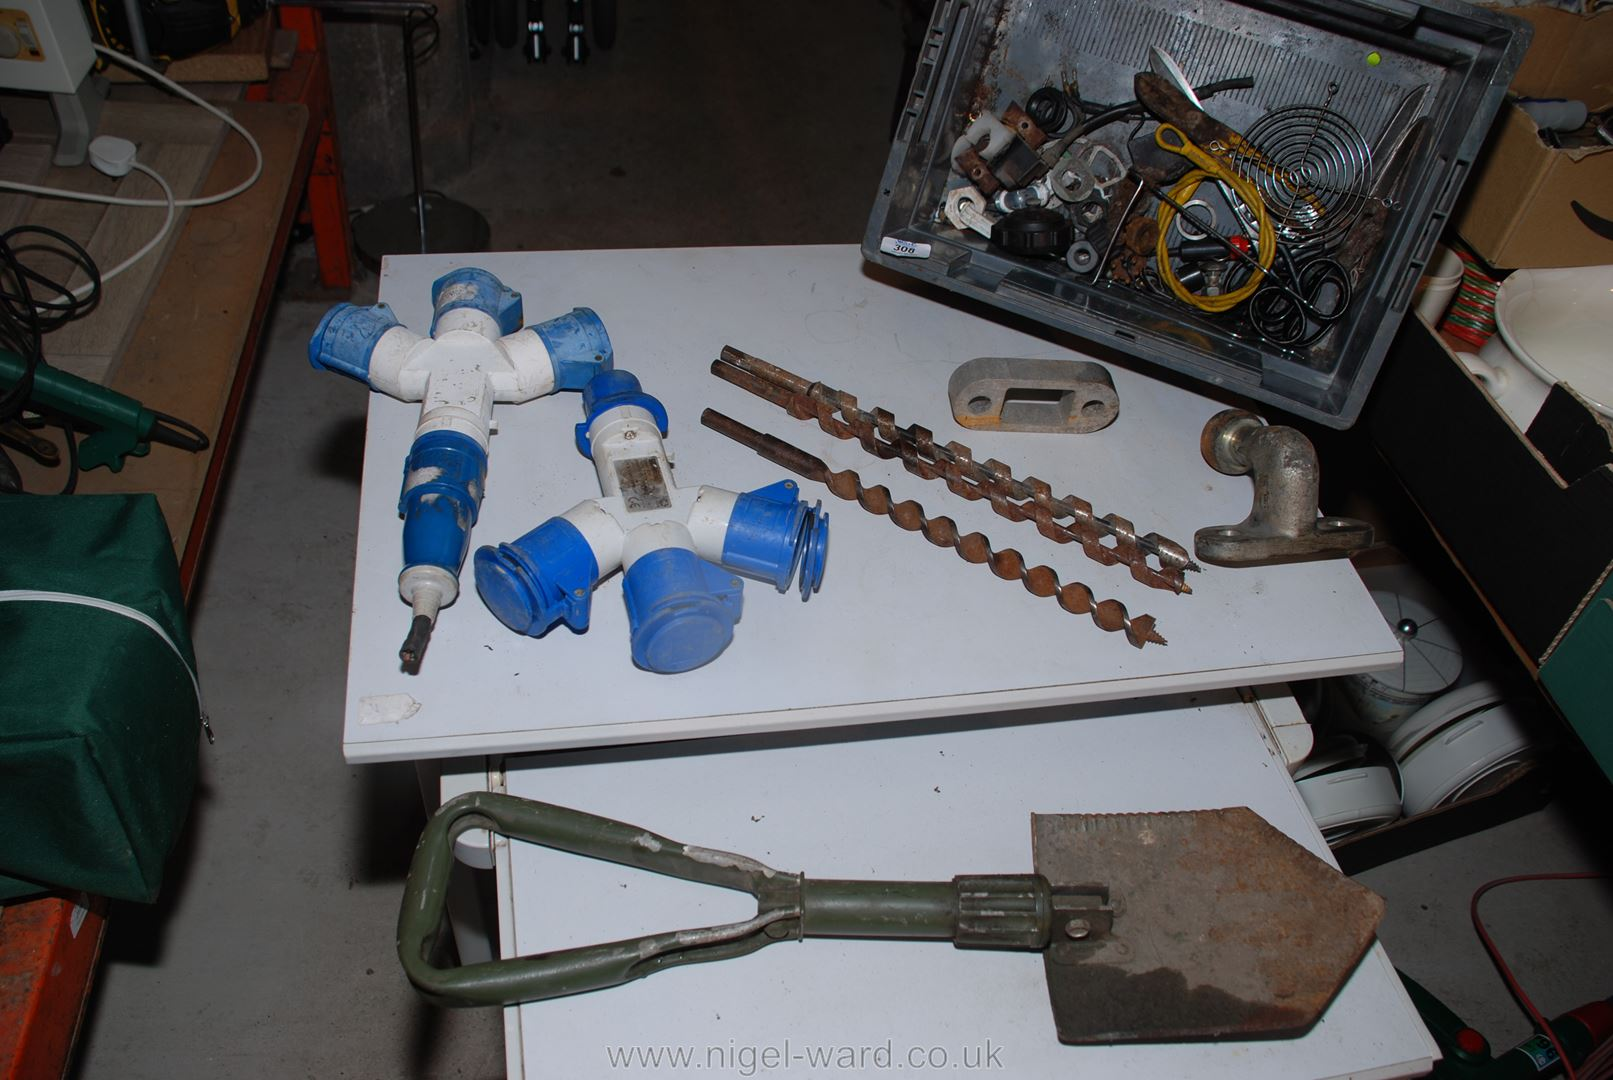 Various wooden drill bits, a tow hitch, folding military style shovel, 240 volt splitters, tools,